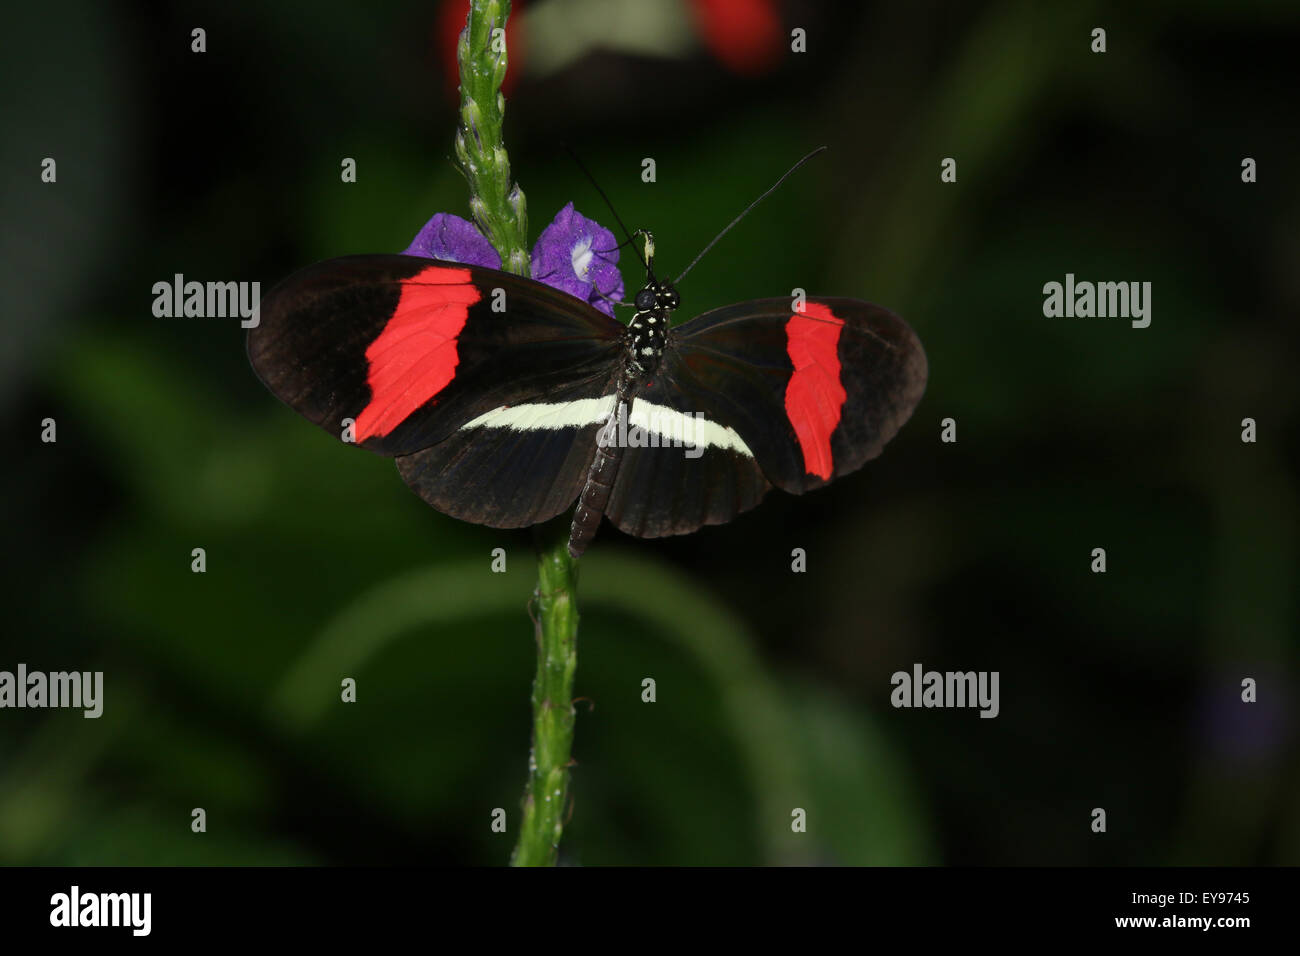 Butterfly. Red Postman, Heliconius erato. The Butterfly Conservatory at Niagara Parks Botanical Gardens, Ontario, - Stock Image